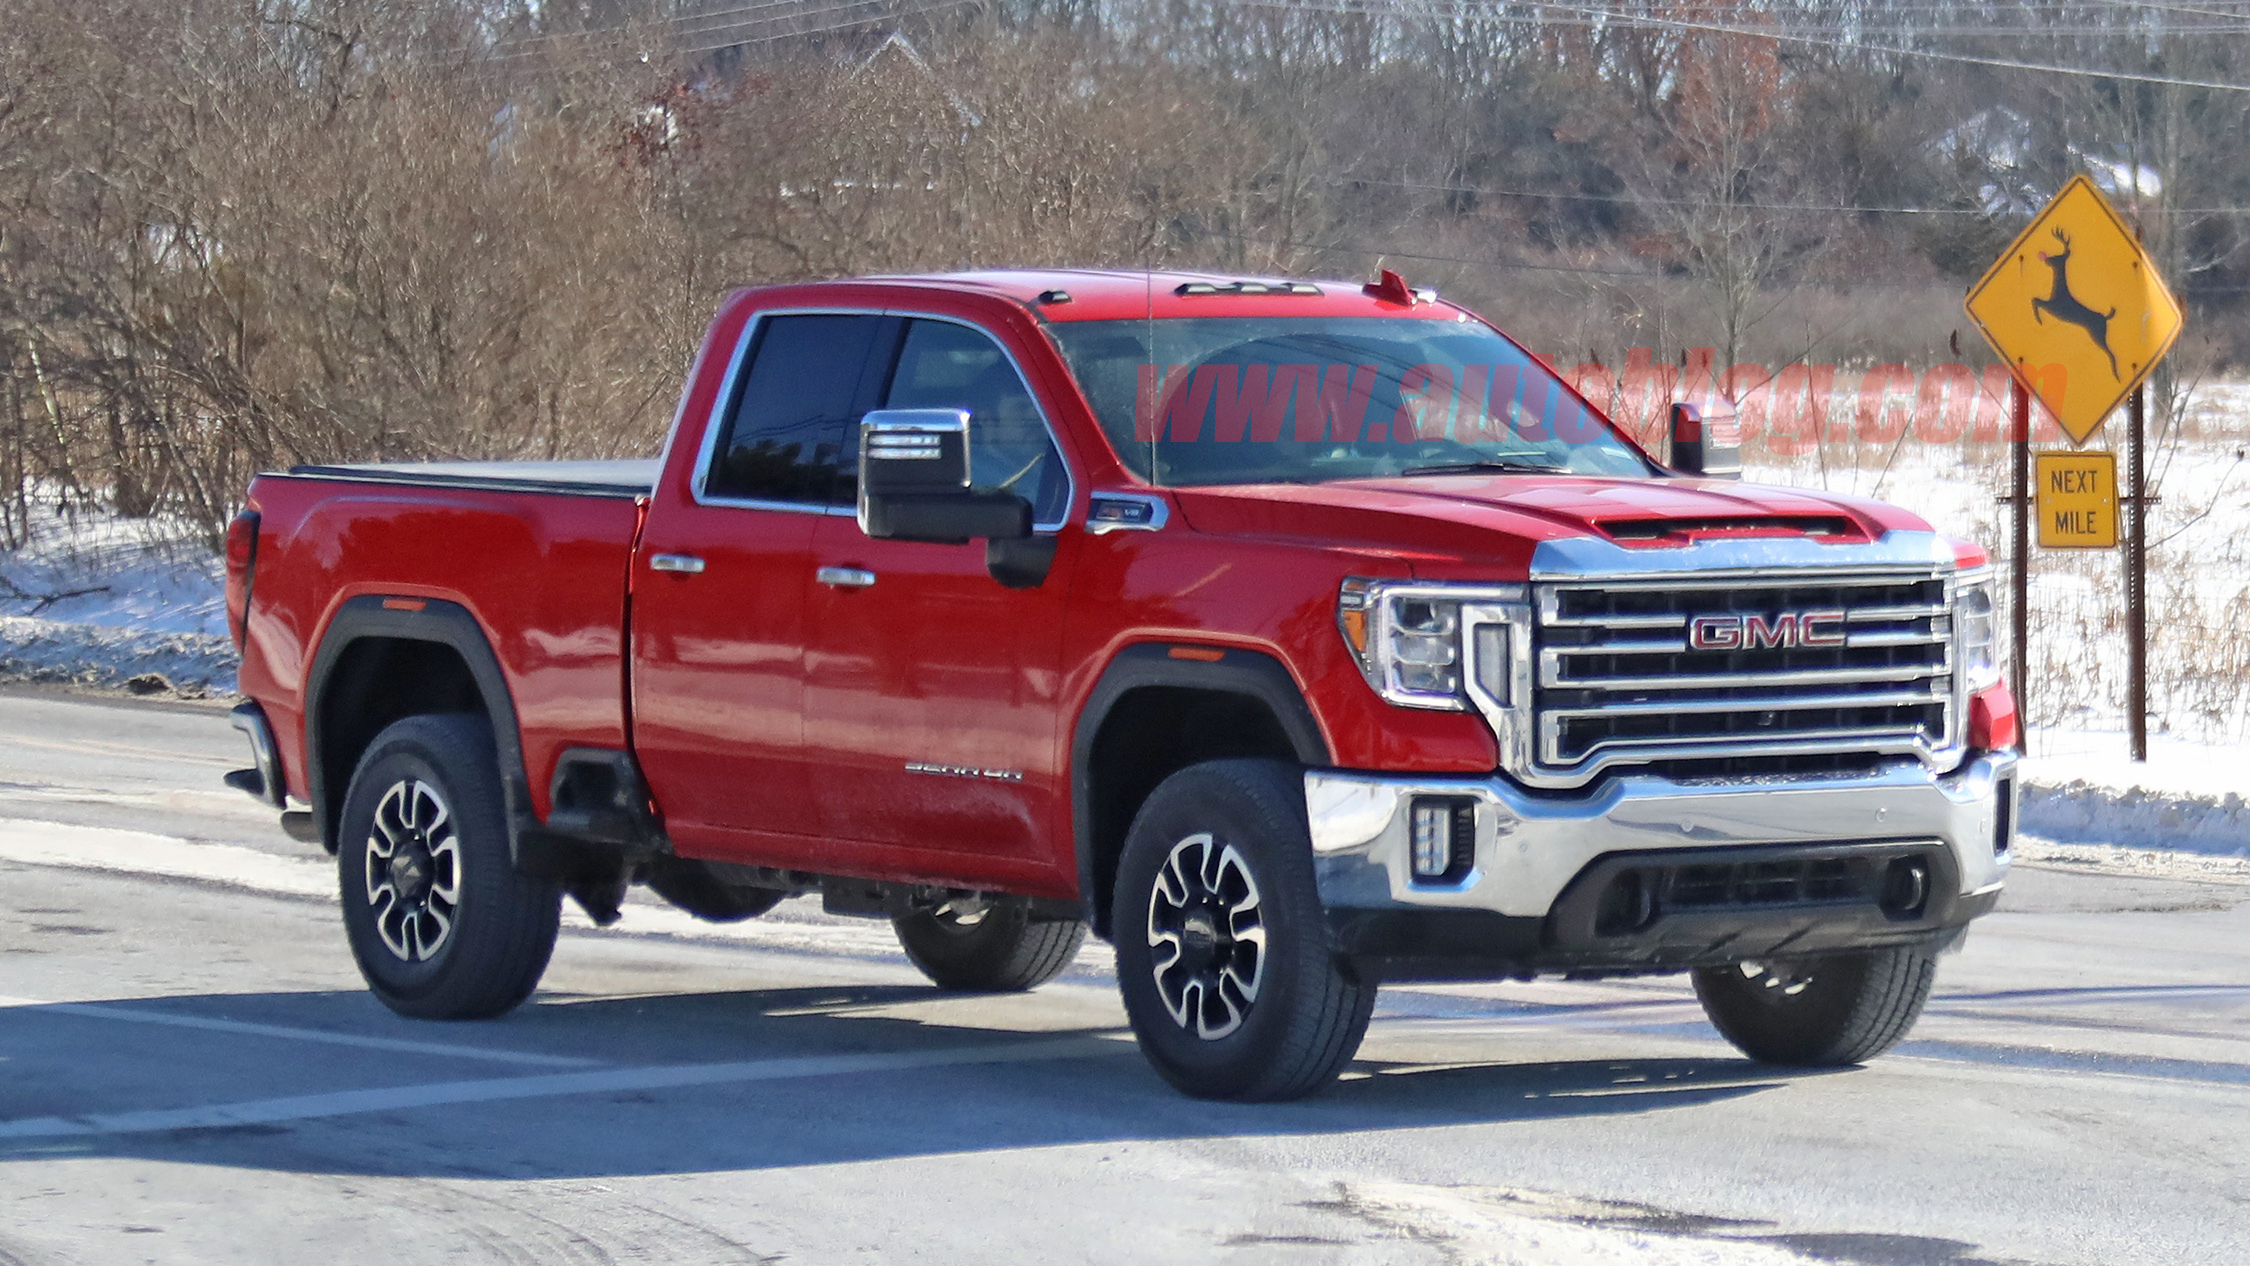 2020 Gmc Sierra Hd Spied In Double Cab Gas Powered Form